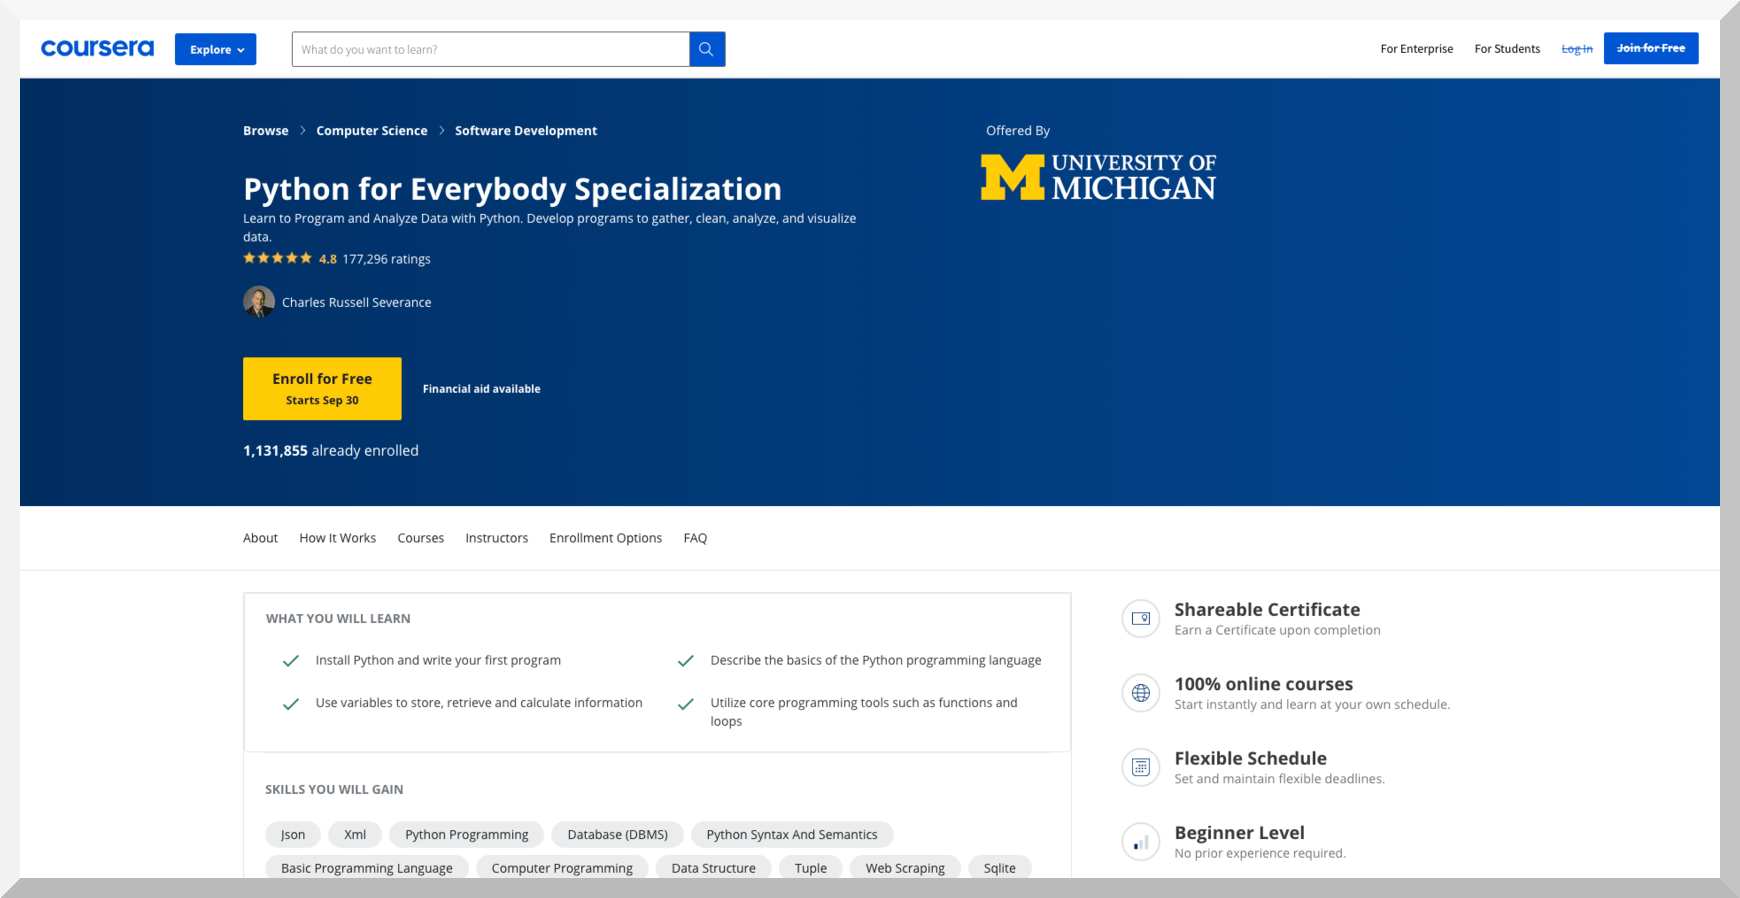 Python for Everybody Specialization by University of Michigan – Coursera